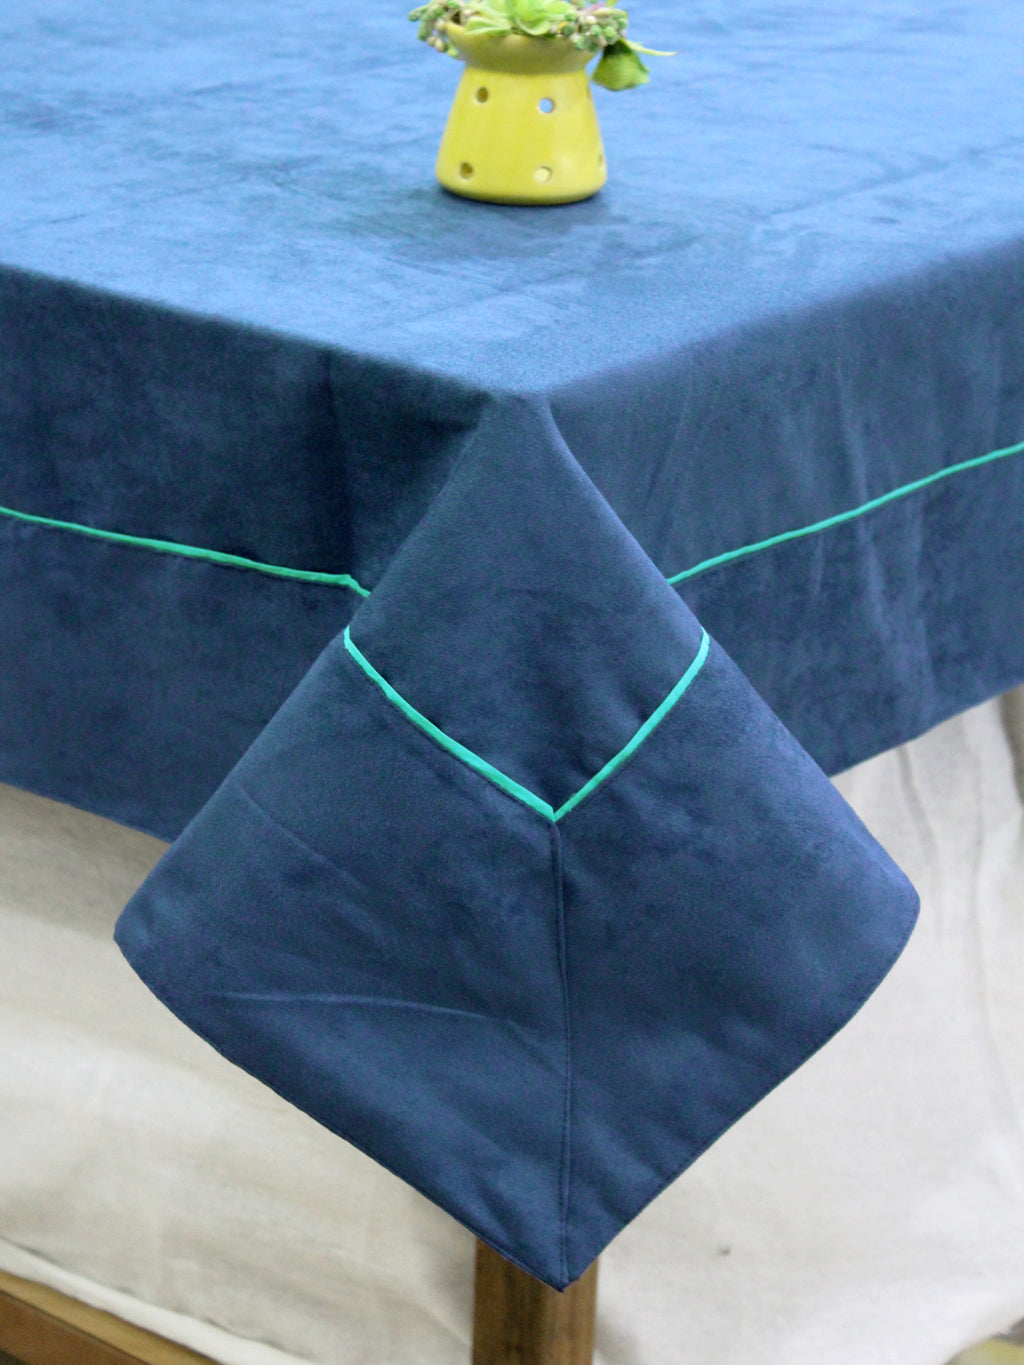 AURAVE Suede Microfibre Solid Plain Polyester Table Cloth - MARINE BLUE